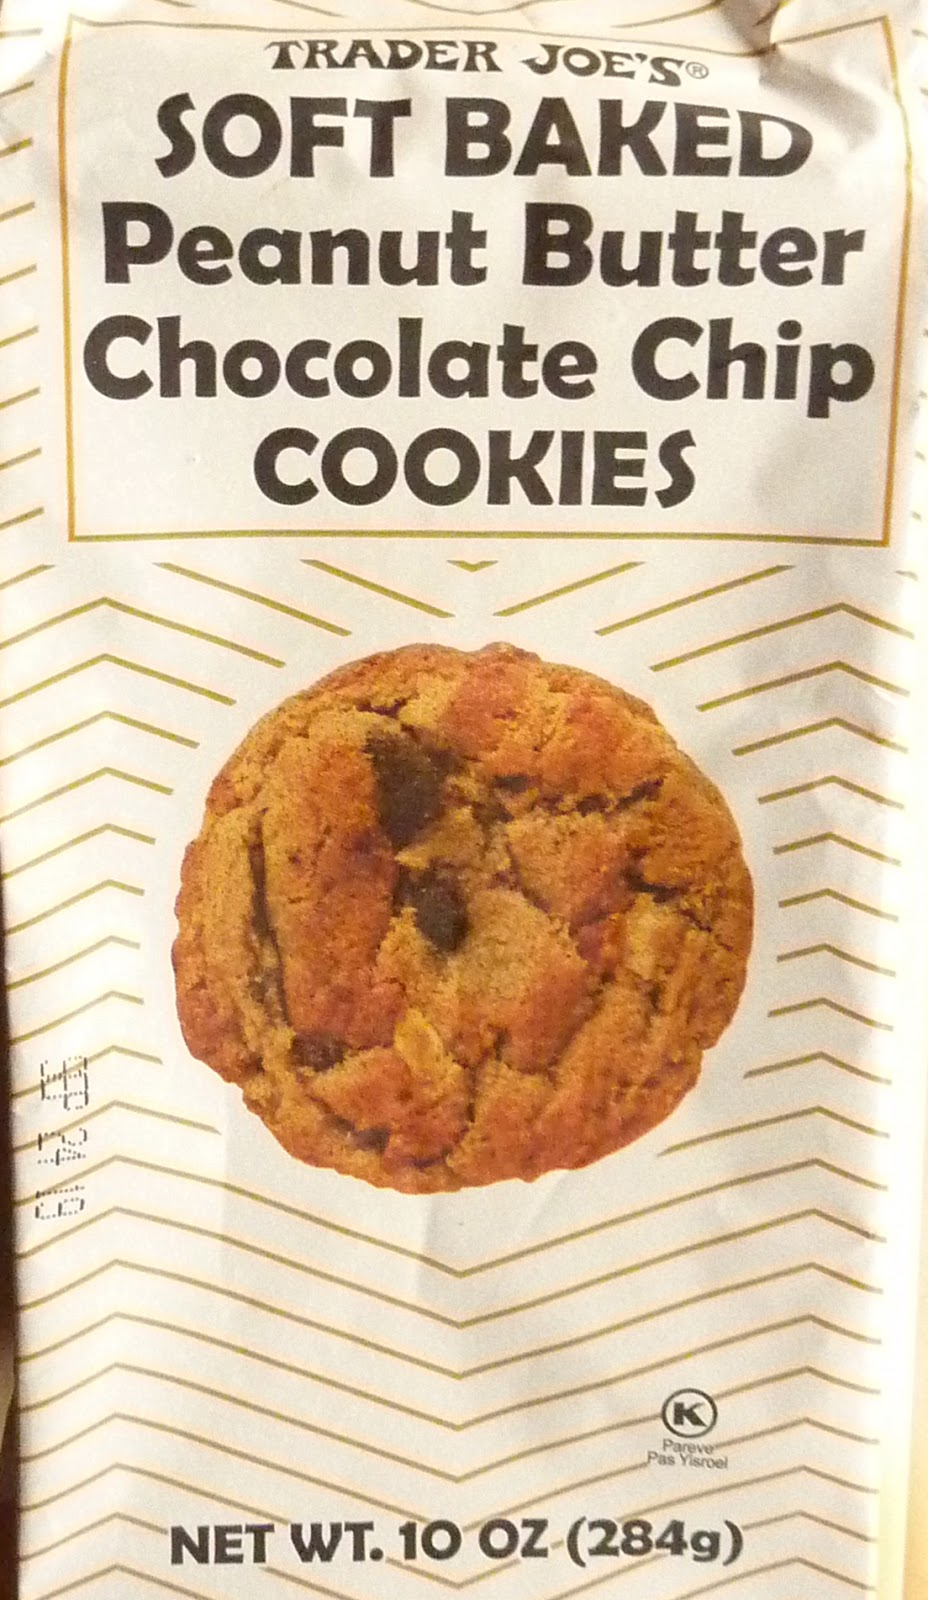 What S Good At Trader Joe S Trader Joe S Soft Baked Peanut Butter Chocolate Chip Cookies